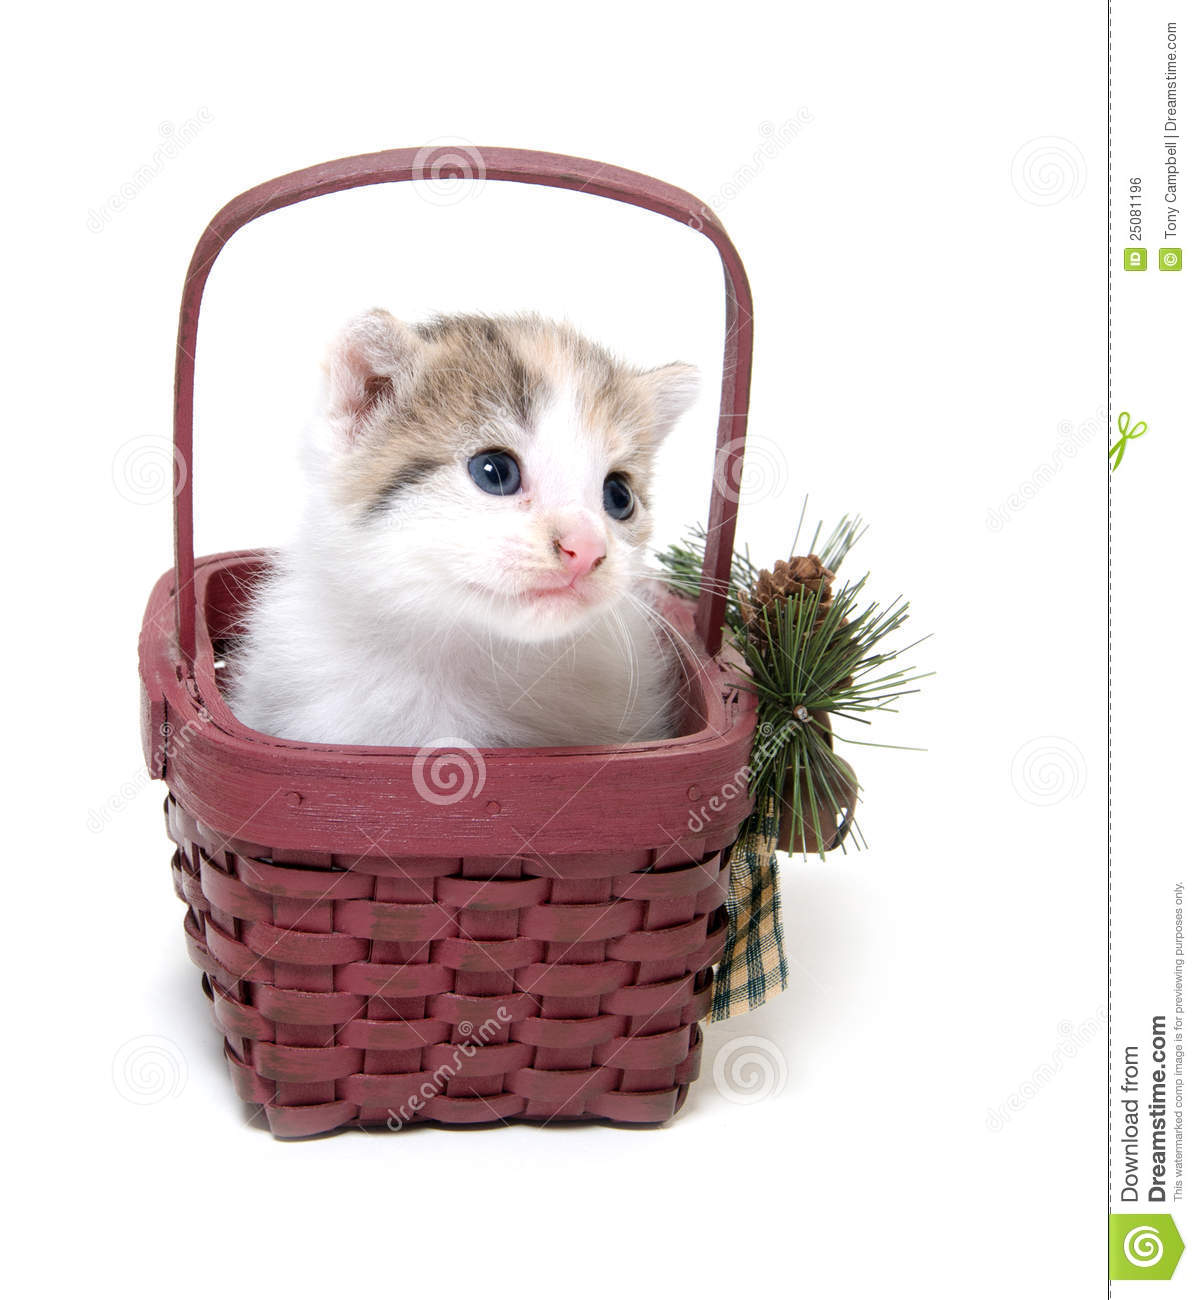 Cute Kitten In A Small Basket Royalty Free Stock Image ...